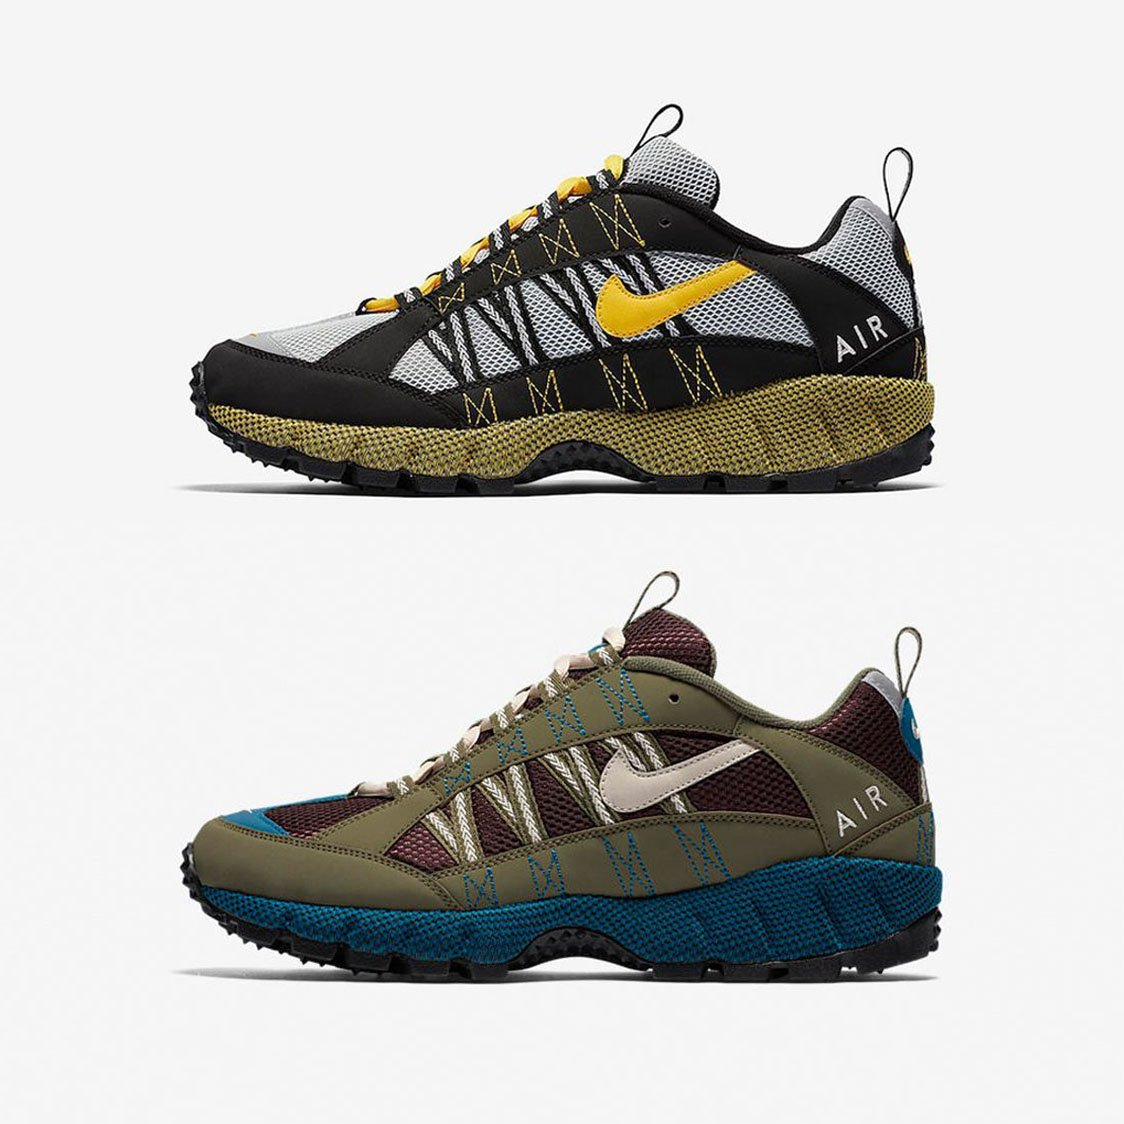 s air humara sneakers are releasing in 5 hours khaki blue burgundy black  grey yellow 157fced32